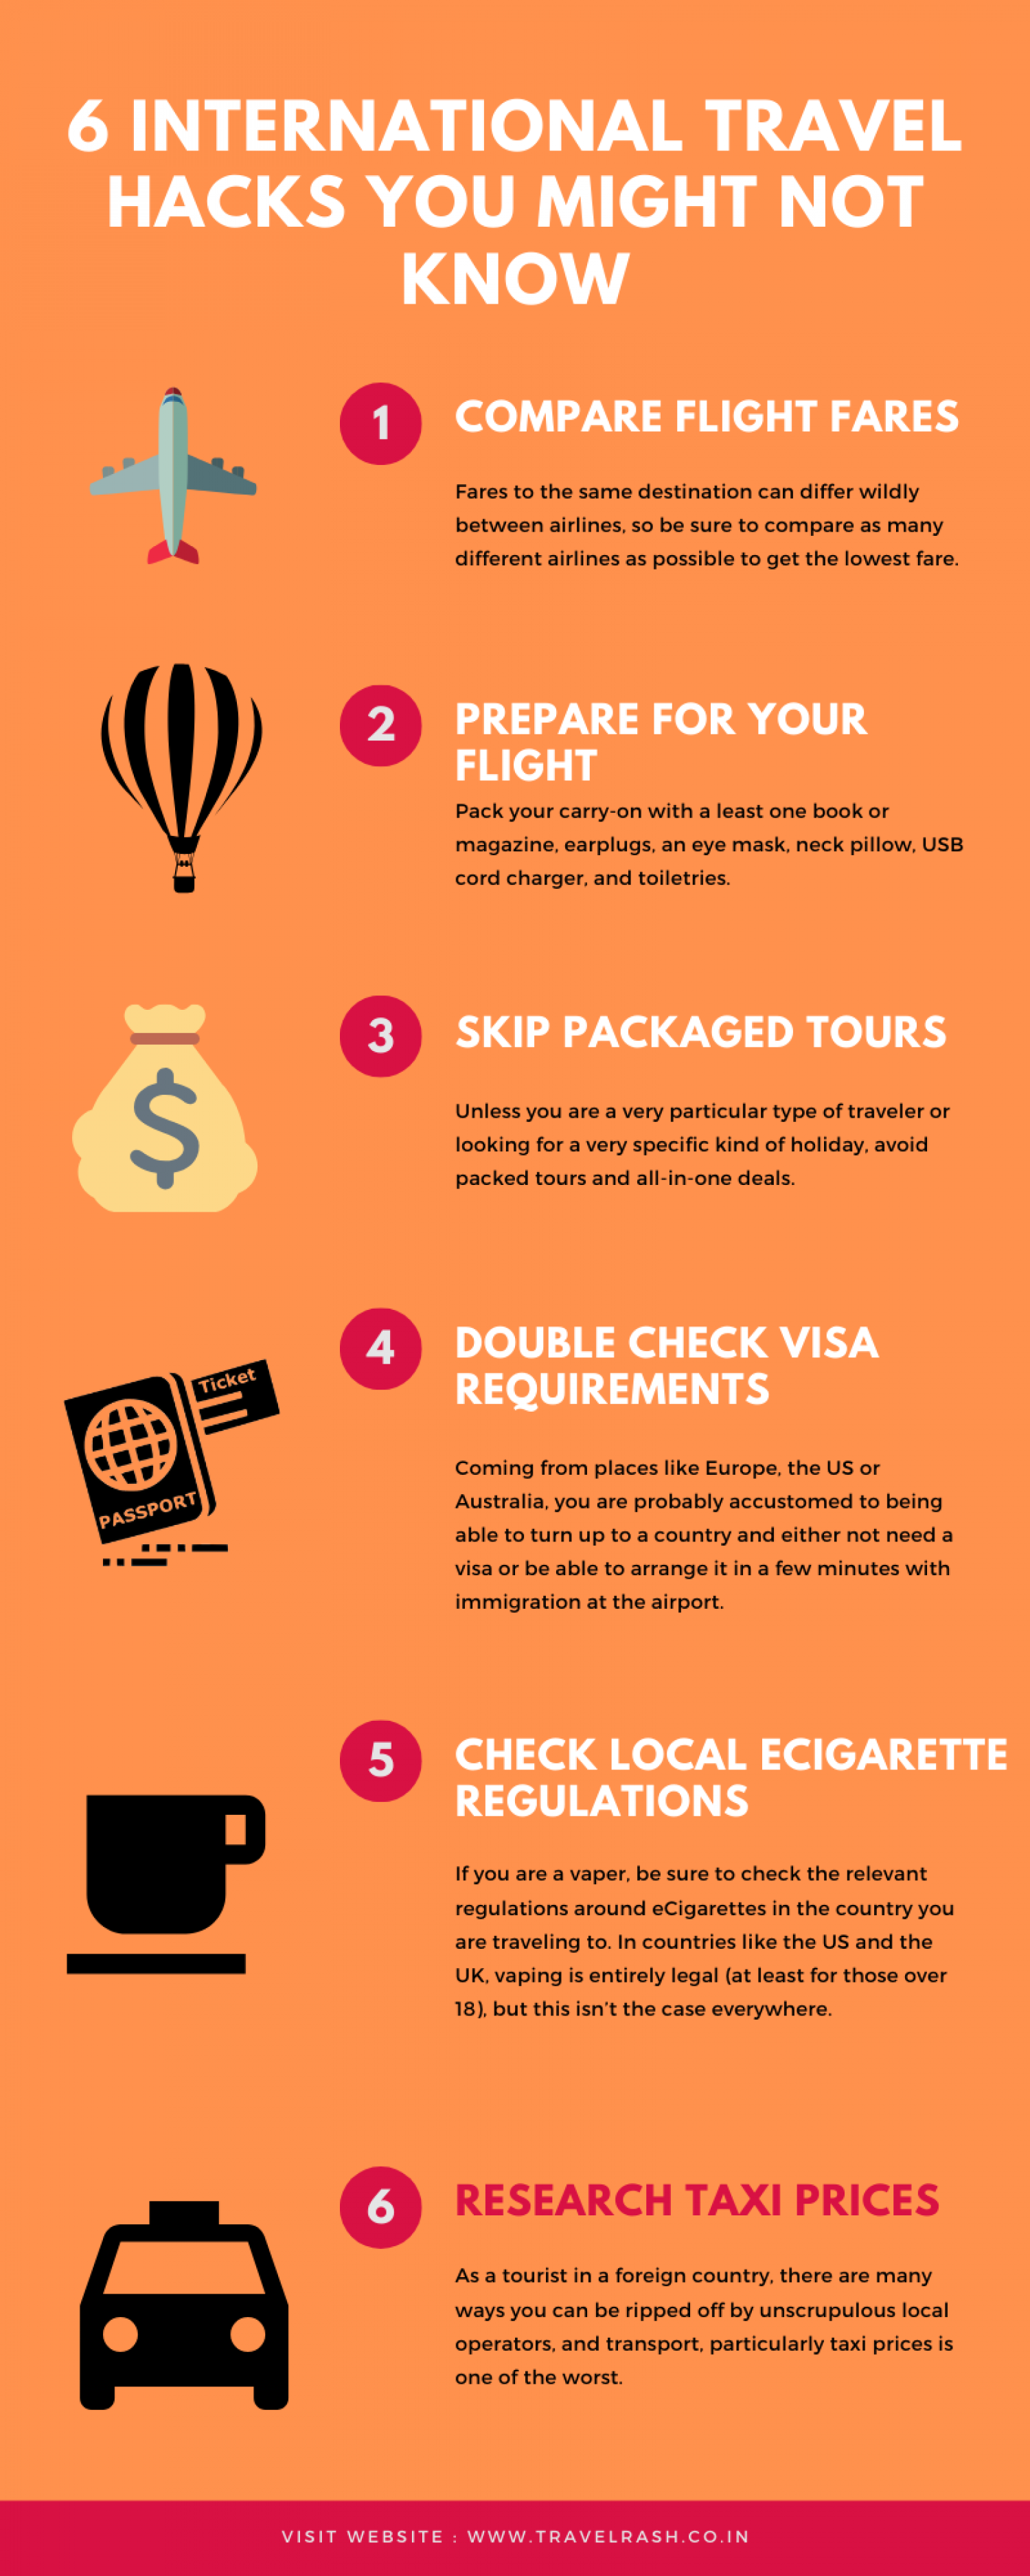 6 International Travel Hacks You Might Not Know Infographic